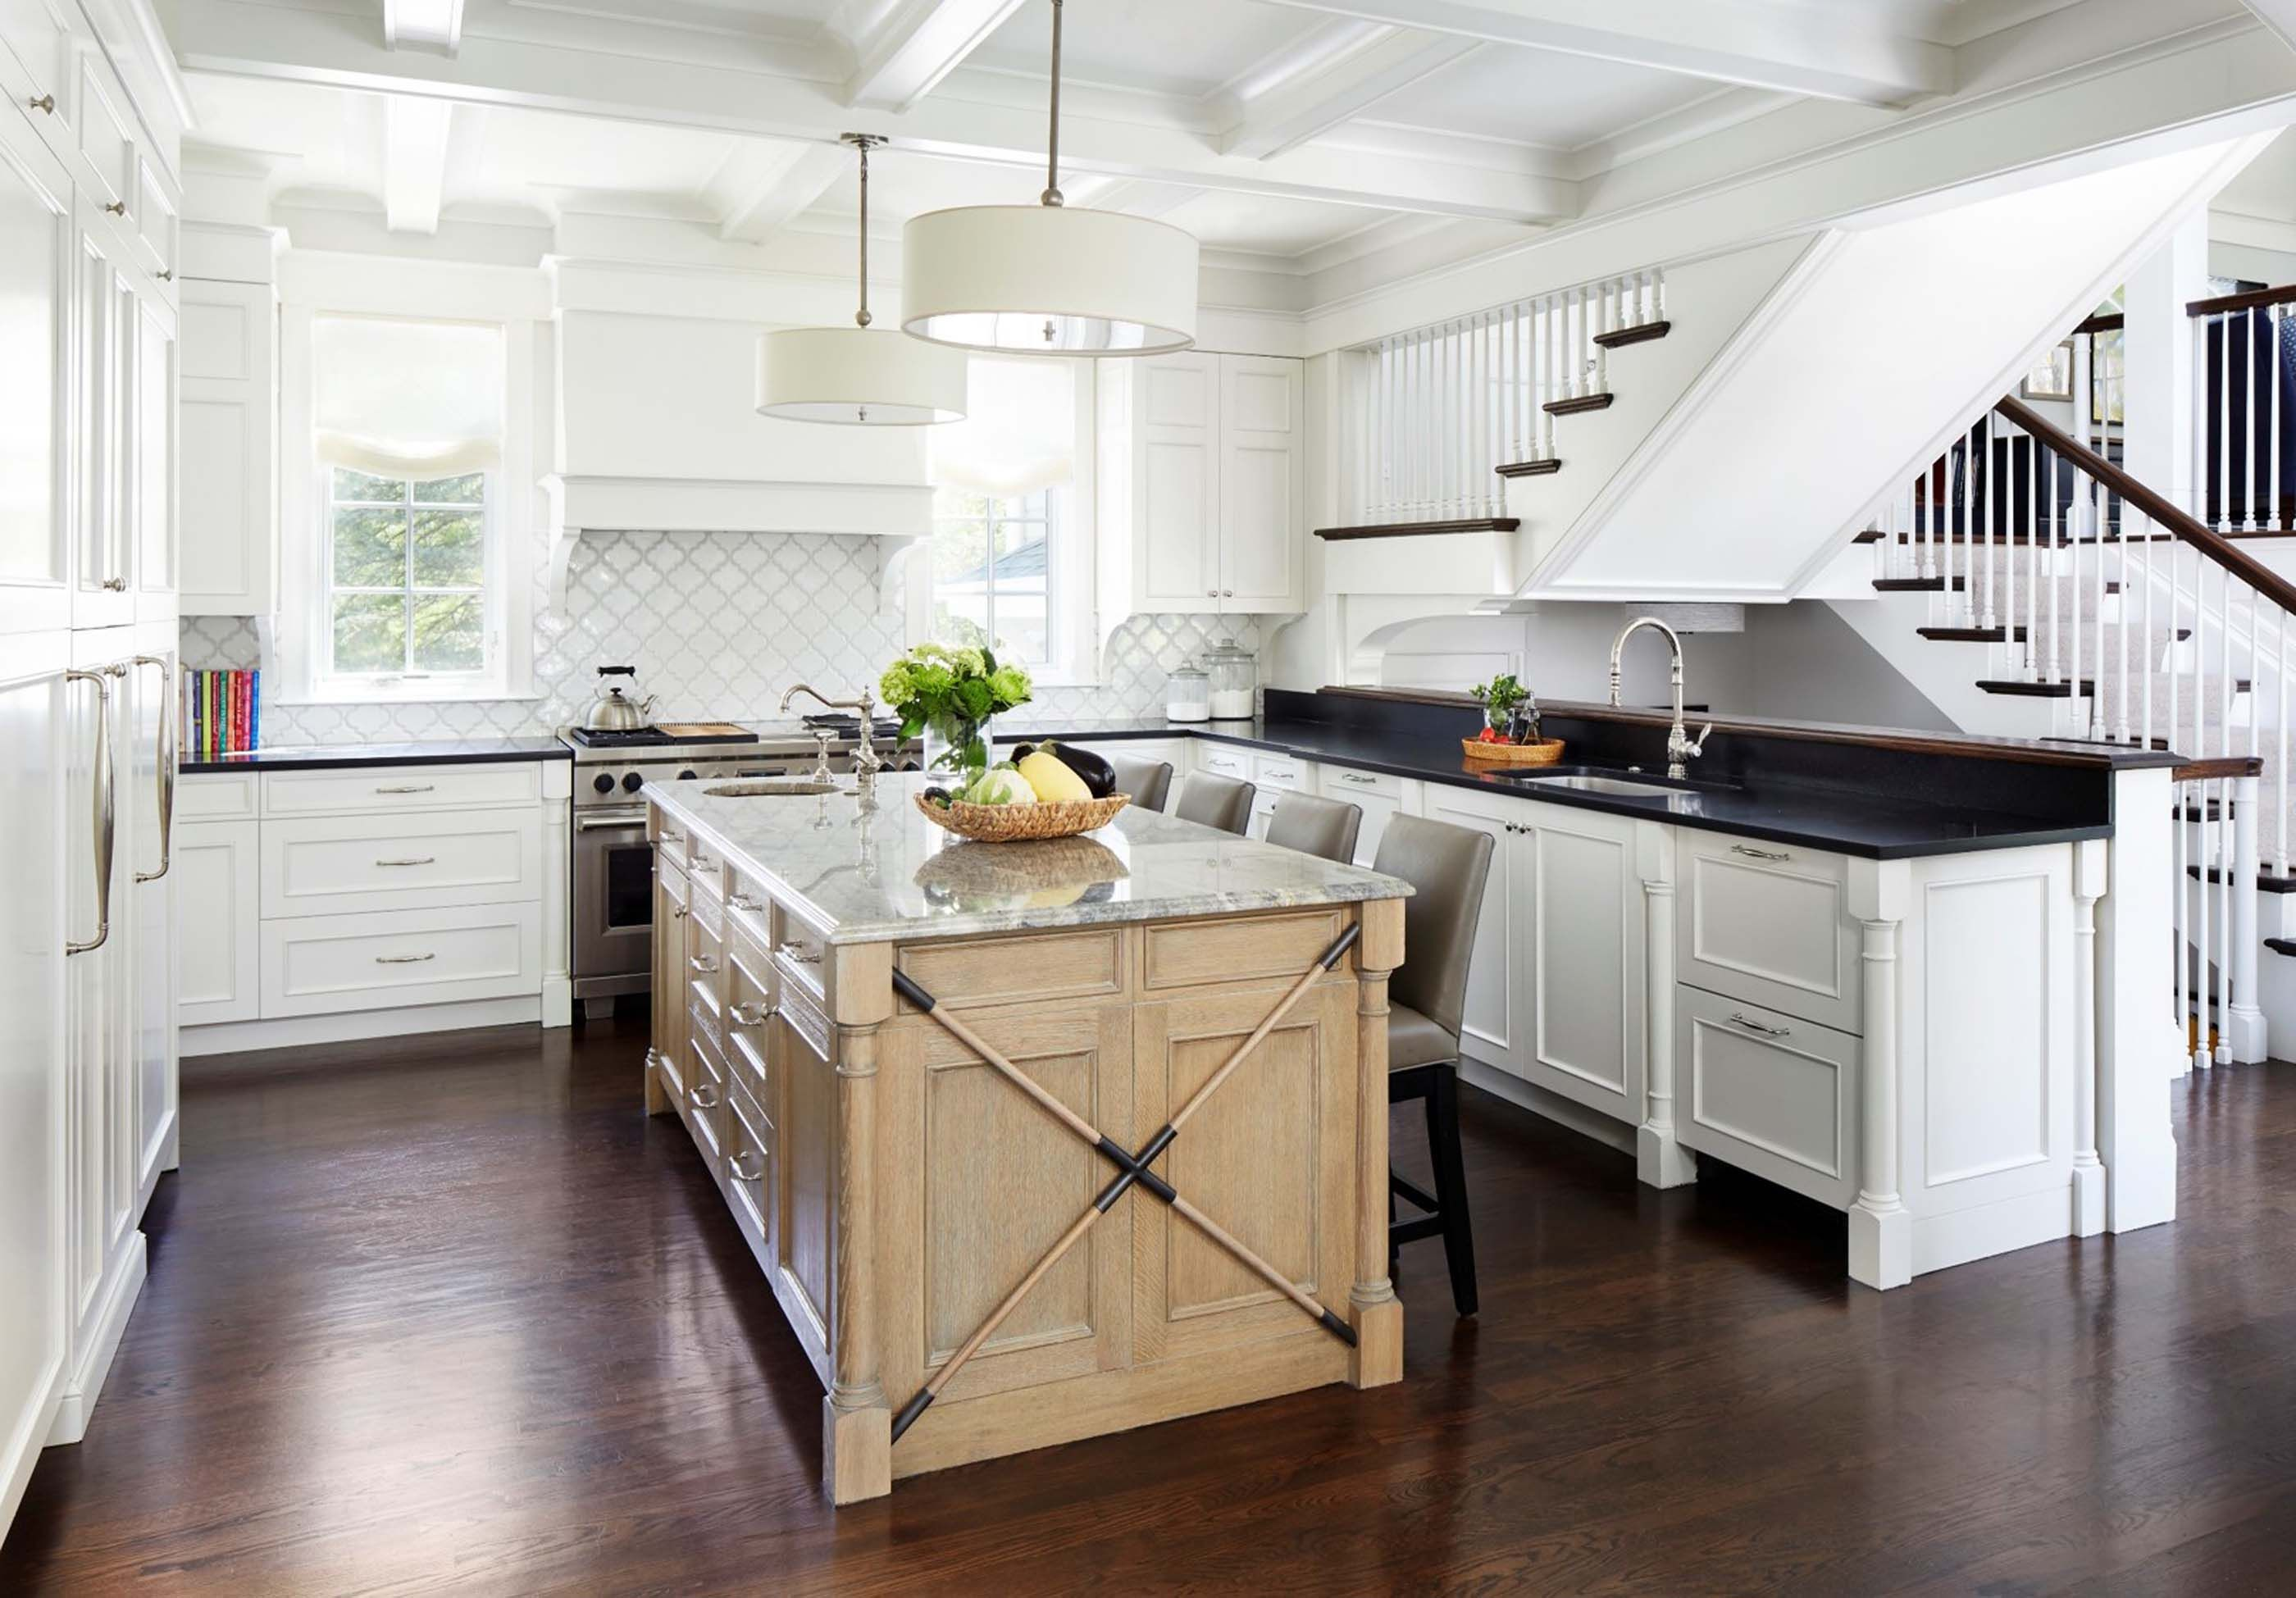 : Morgante Wilson Architects designed this traditional yet ...